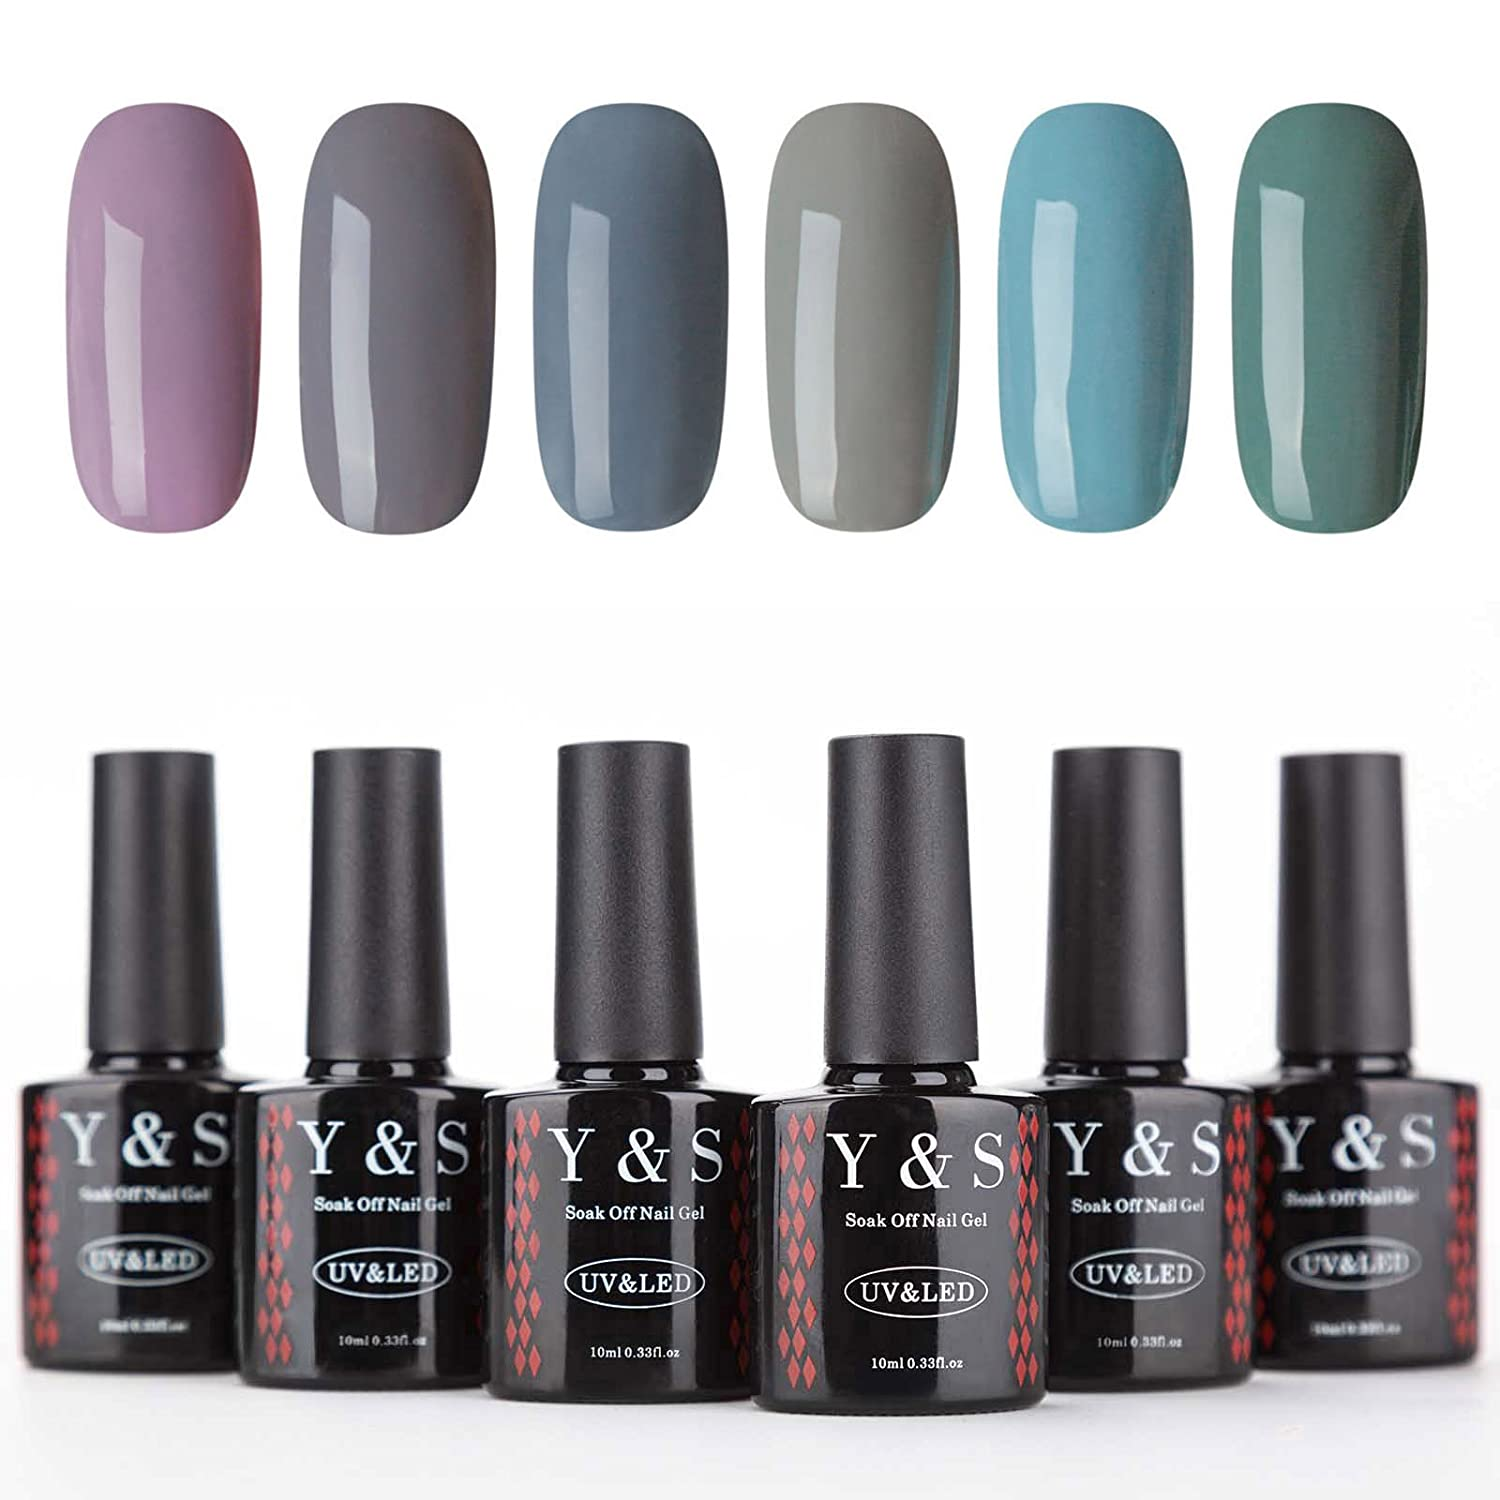 Y& S UV LED Gel Nail Polish 6 Colours Soak Off Gel Polish Starter Kit #005, 10ml Ltd